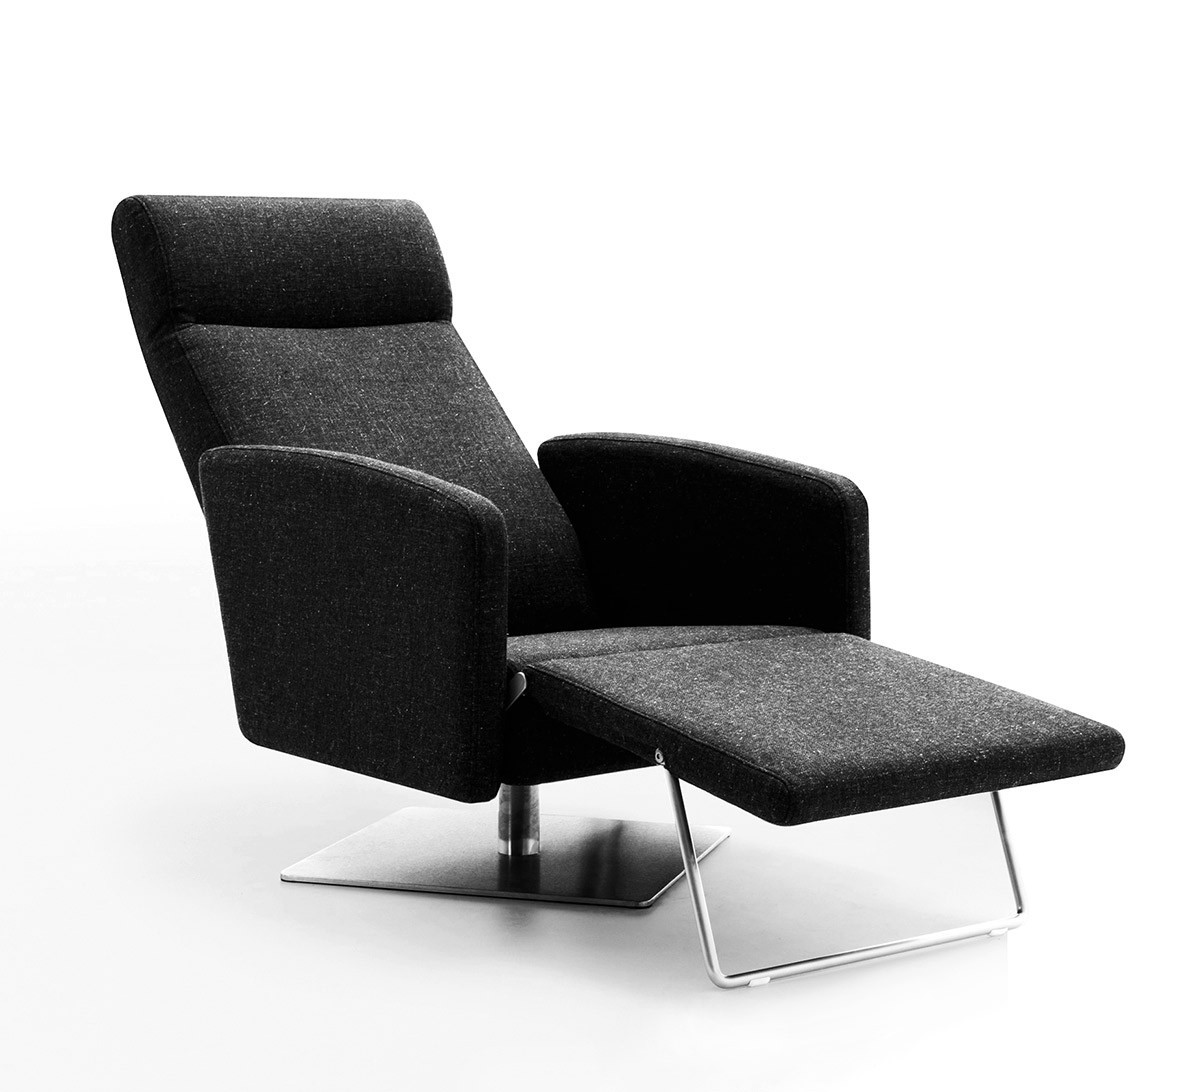 Best ideas about Modern Recliner Chair . Save or Pin Abbot Modern Fabric Reclining Lounge Chair Now.